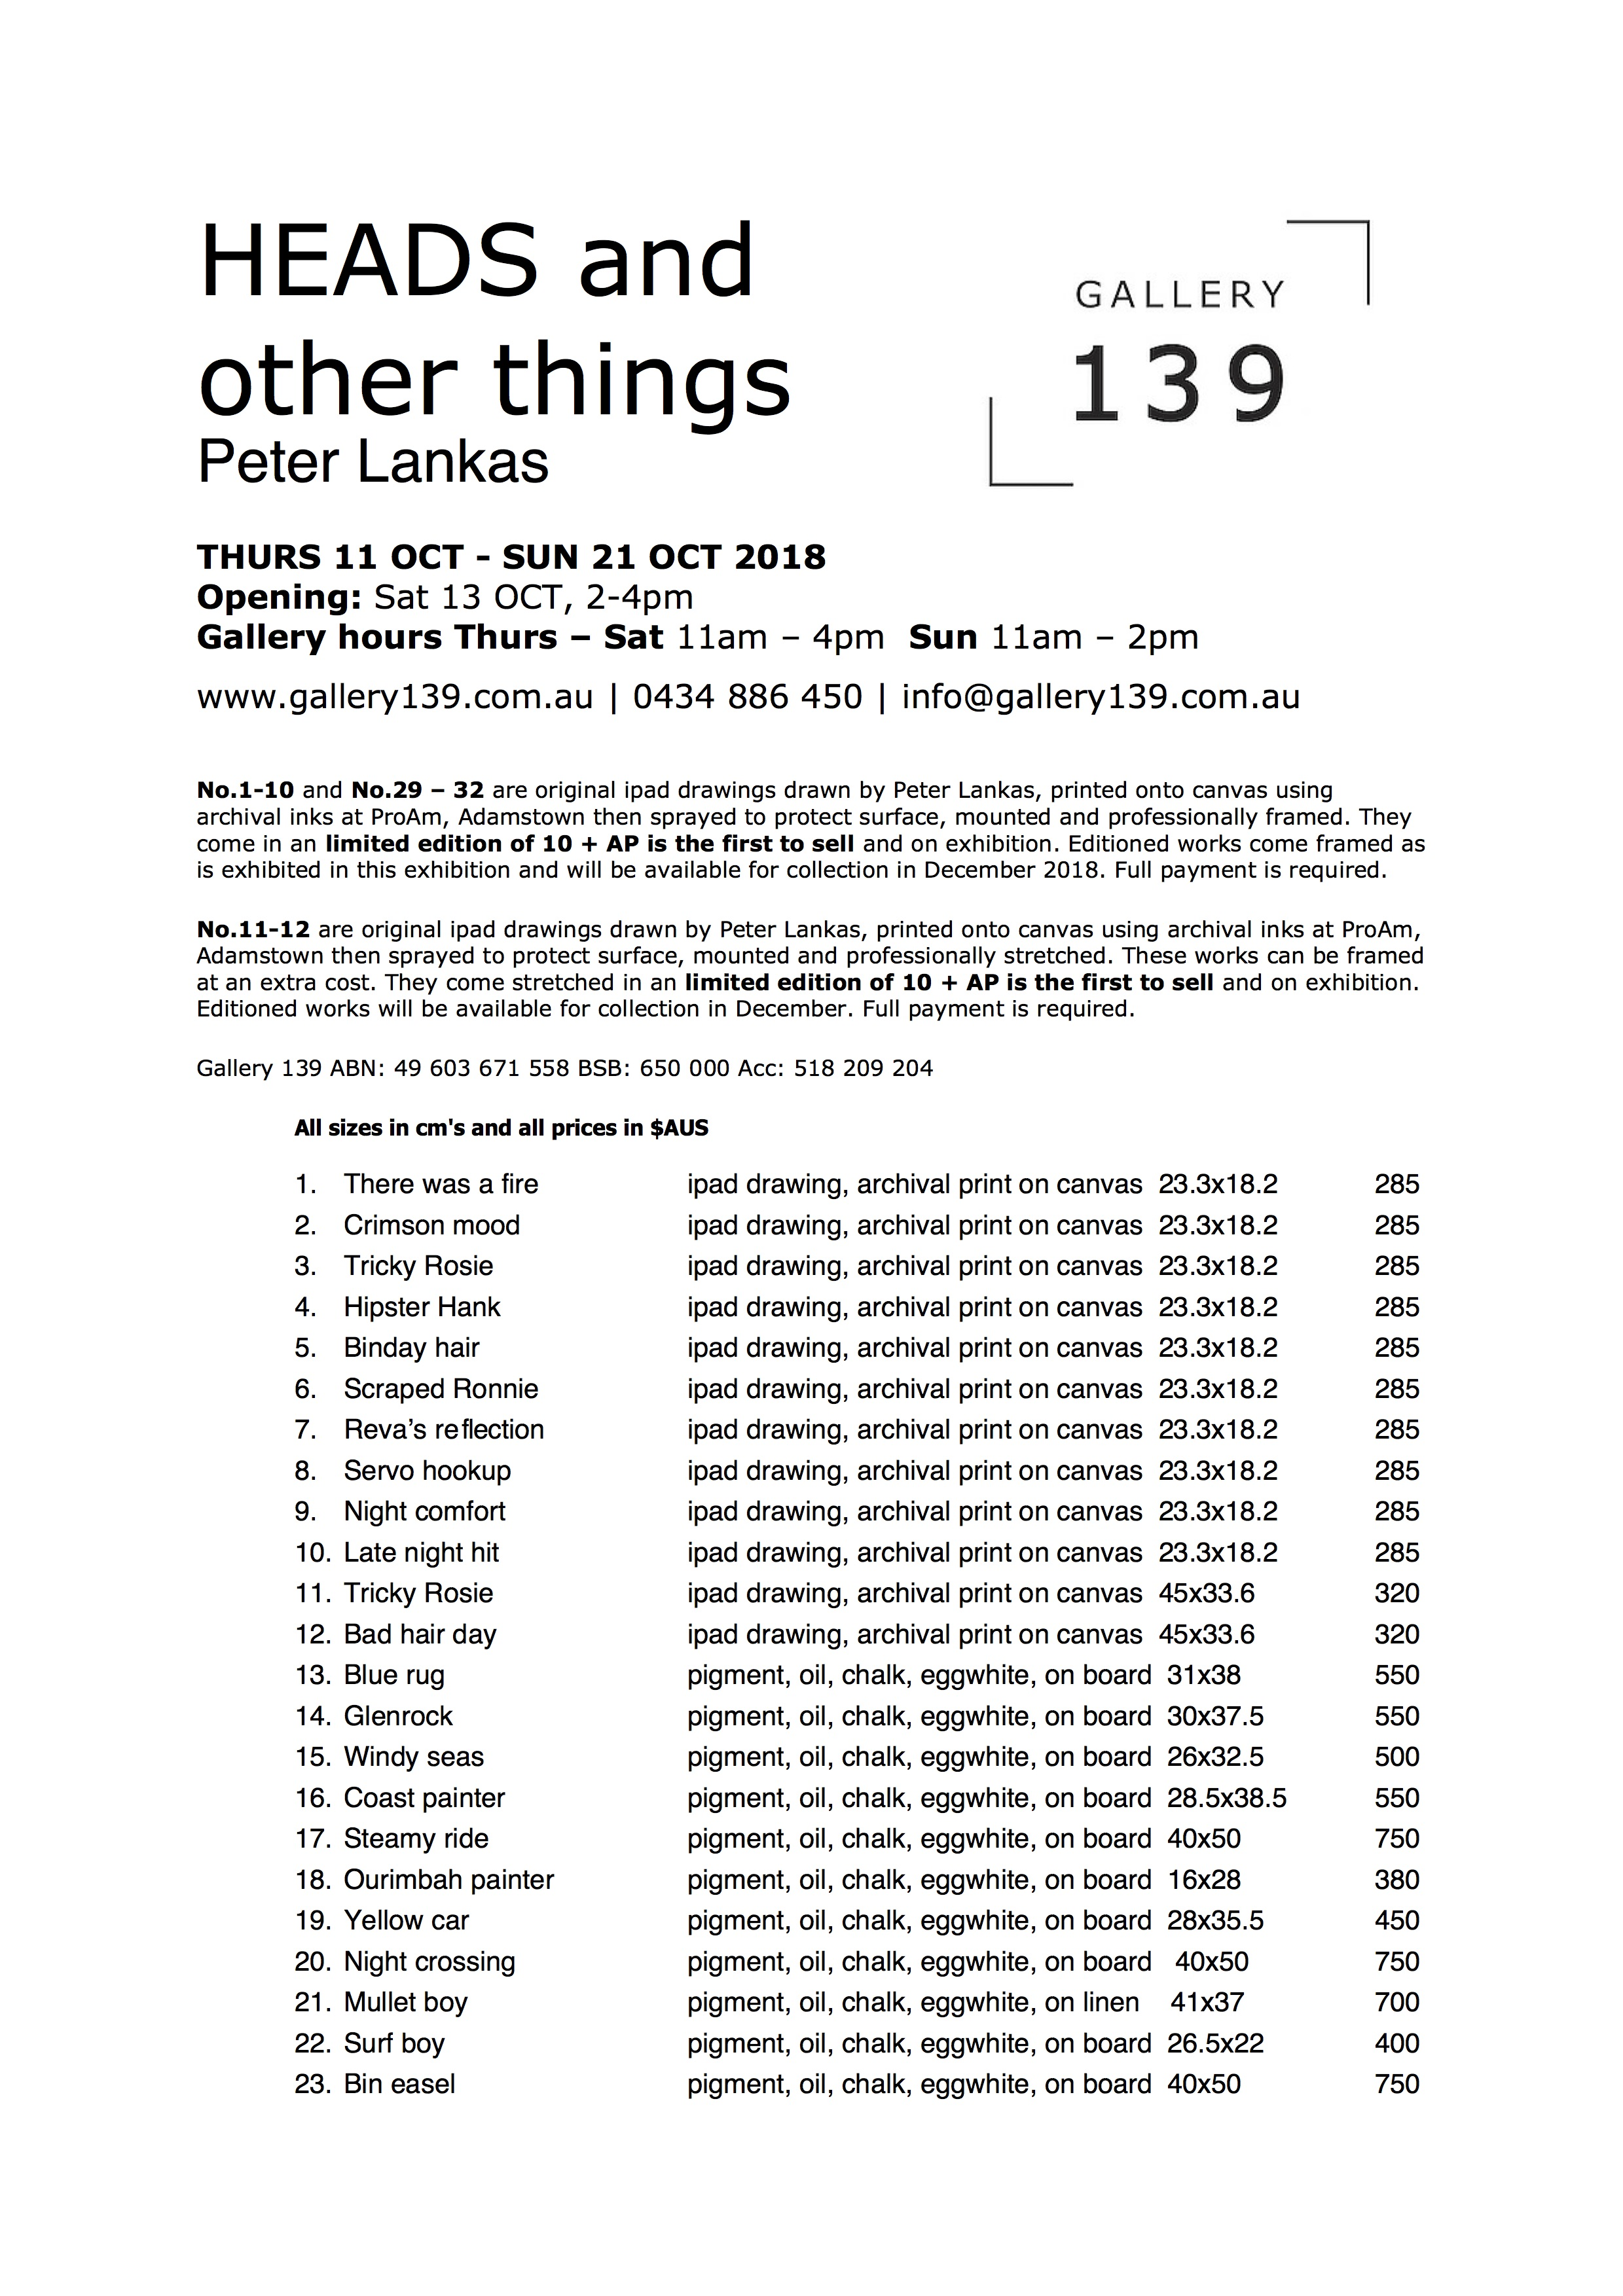 PRICELIST heads and other things FINAL Page 1.jpg